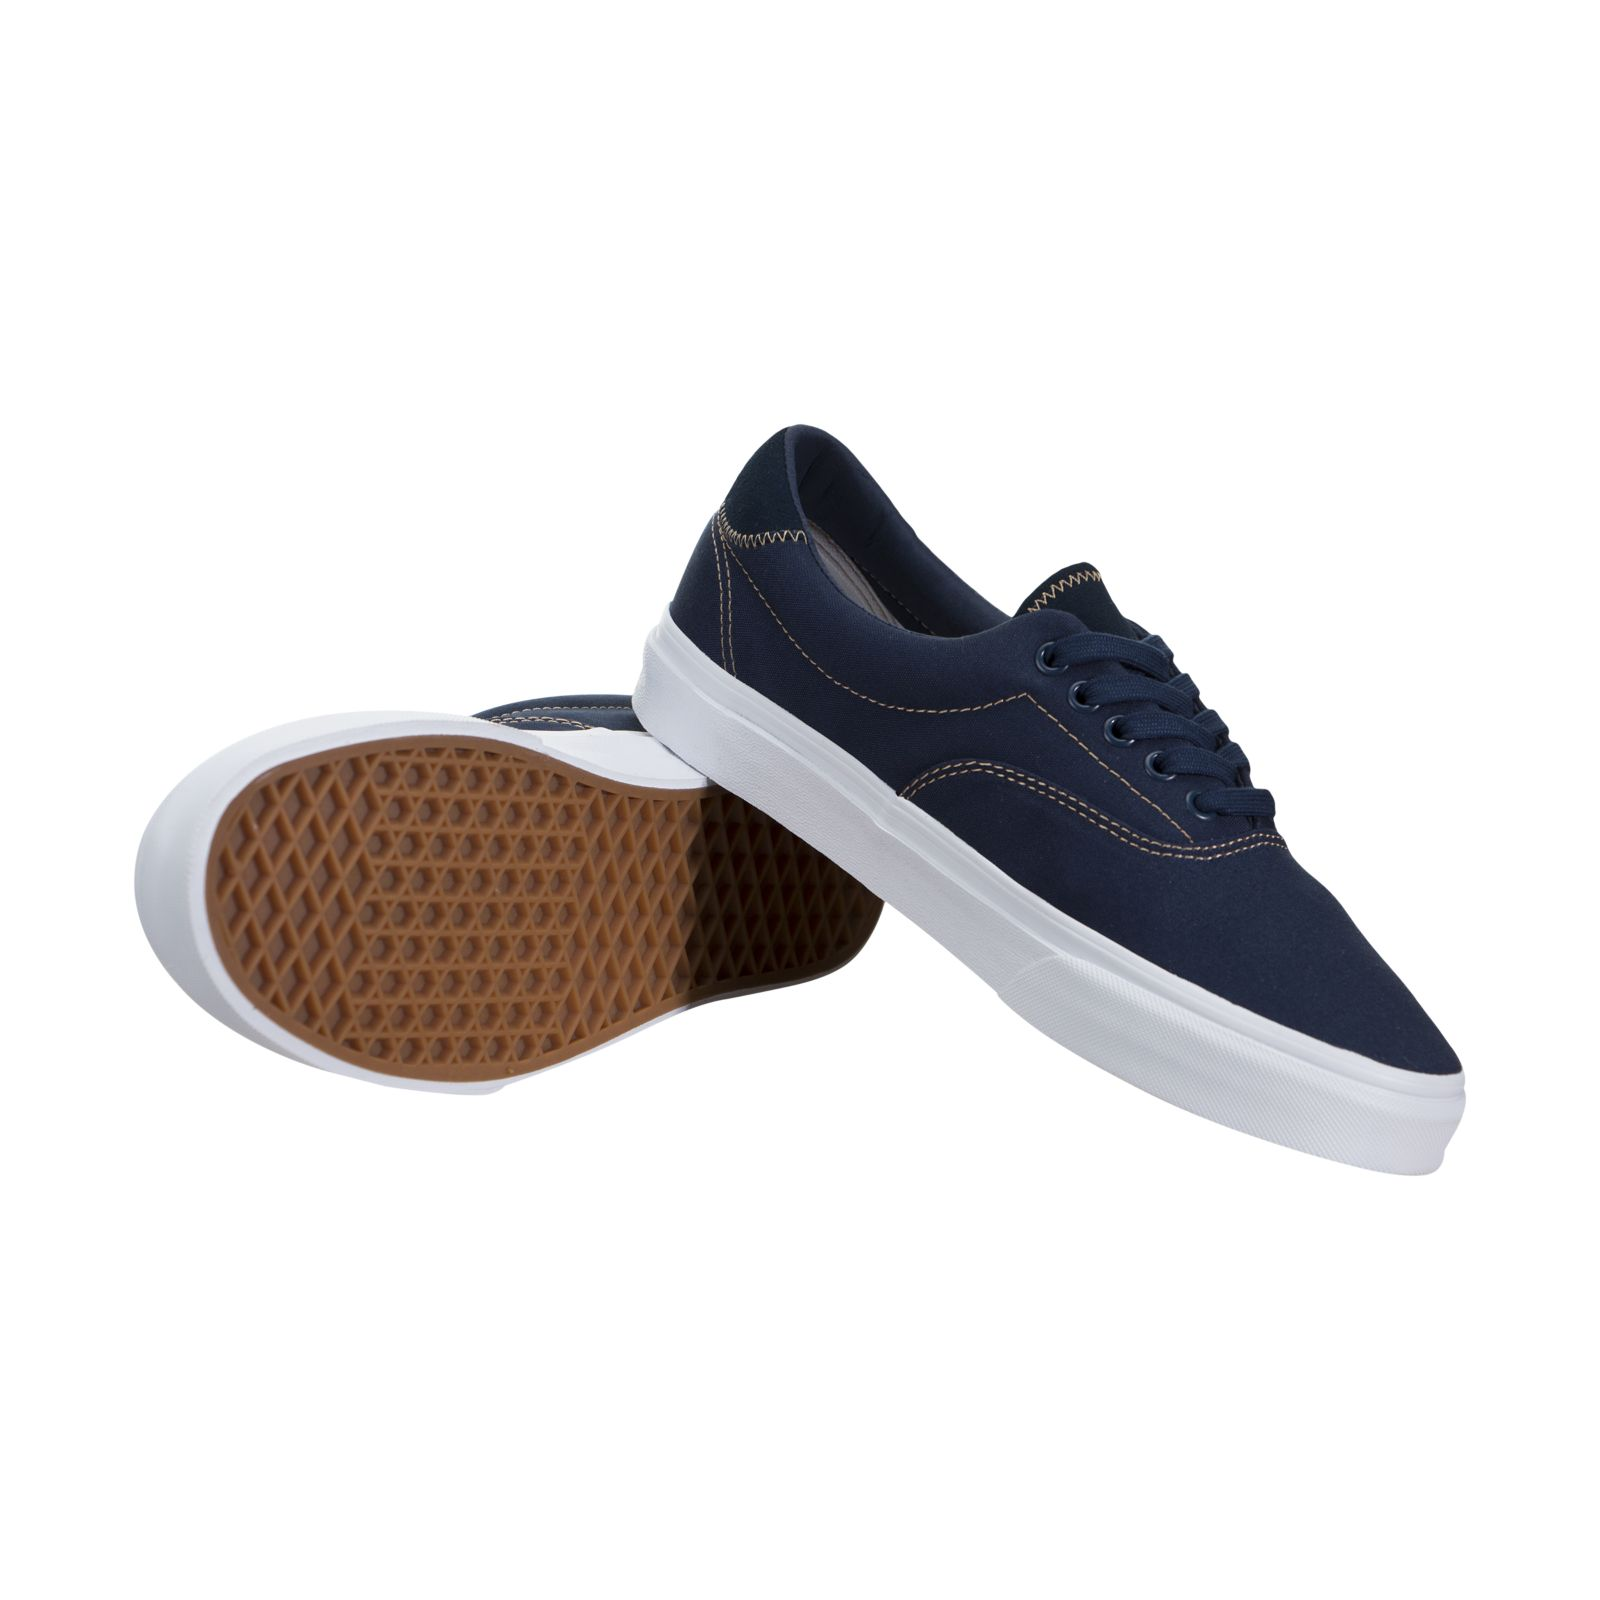 5932f898f2 VANS Era 59 Blue Sand Canvas Classic Men Skate Boarding Shoes SNEAKERS  71010225 9.5. About this product. Picture 1 of 5  Picture 2 of 5  Picture 3  of 5 ...